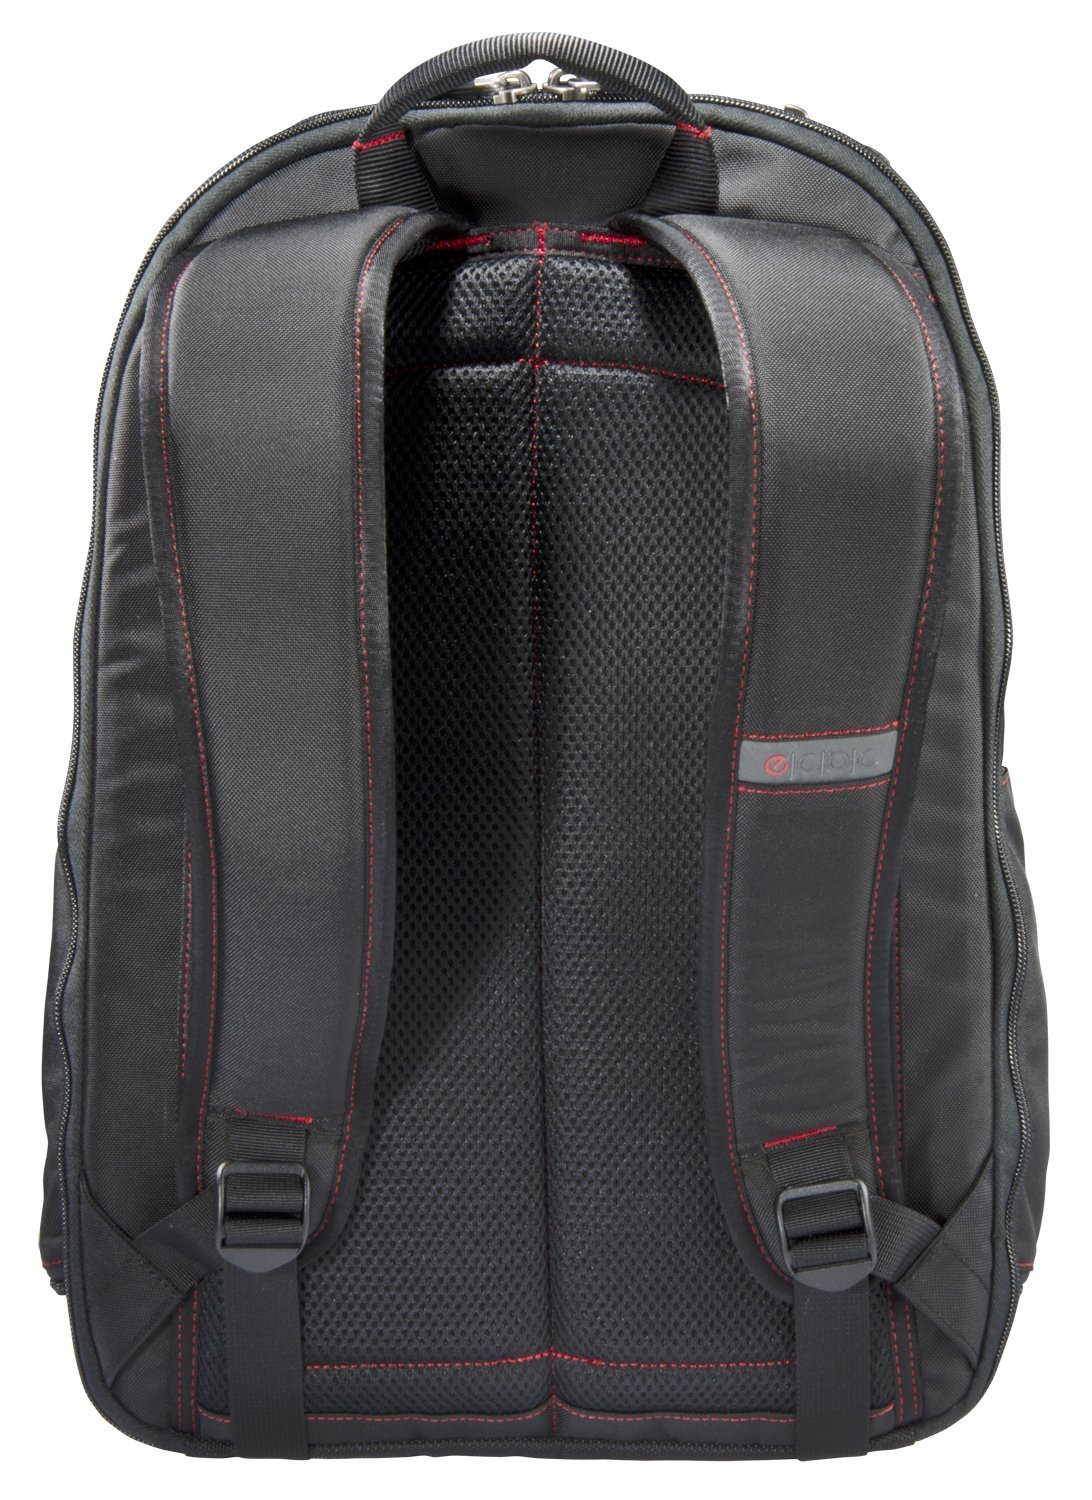 ECBC Javelin - Backpack Computer Bag - Black (B7102-10) Daypack for Laptops, MacBooks & Devices Up to 16.5'' - Travel, School or Business Backpack for Men & Women - Premium Quality, TSA FastPass Friendly by ECBC (Image #5)